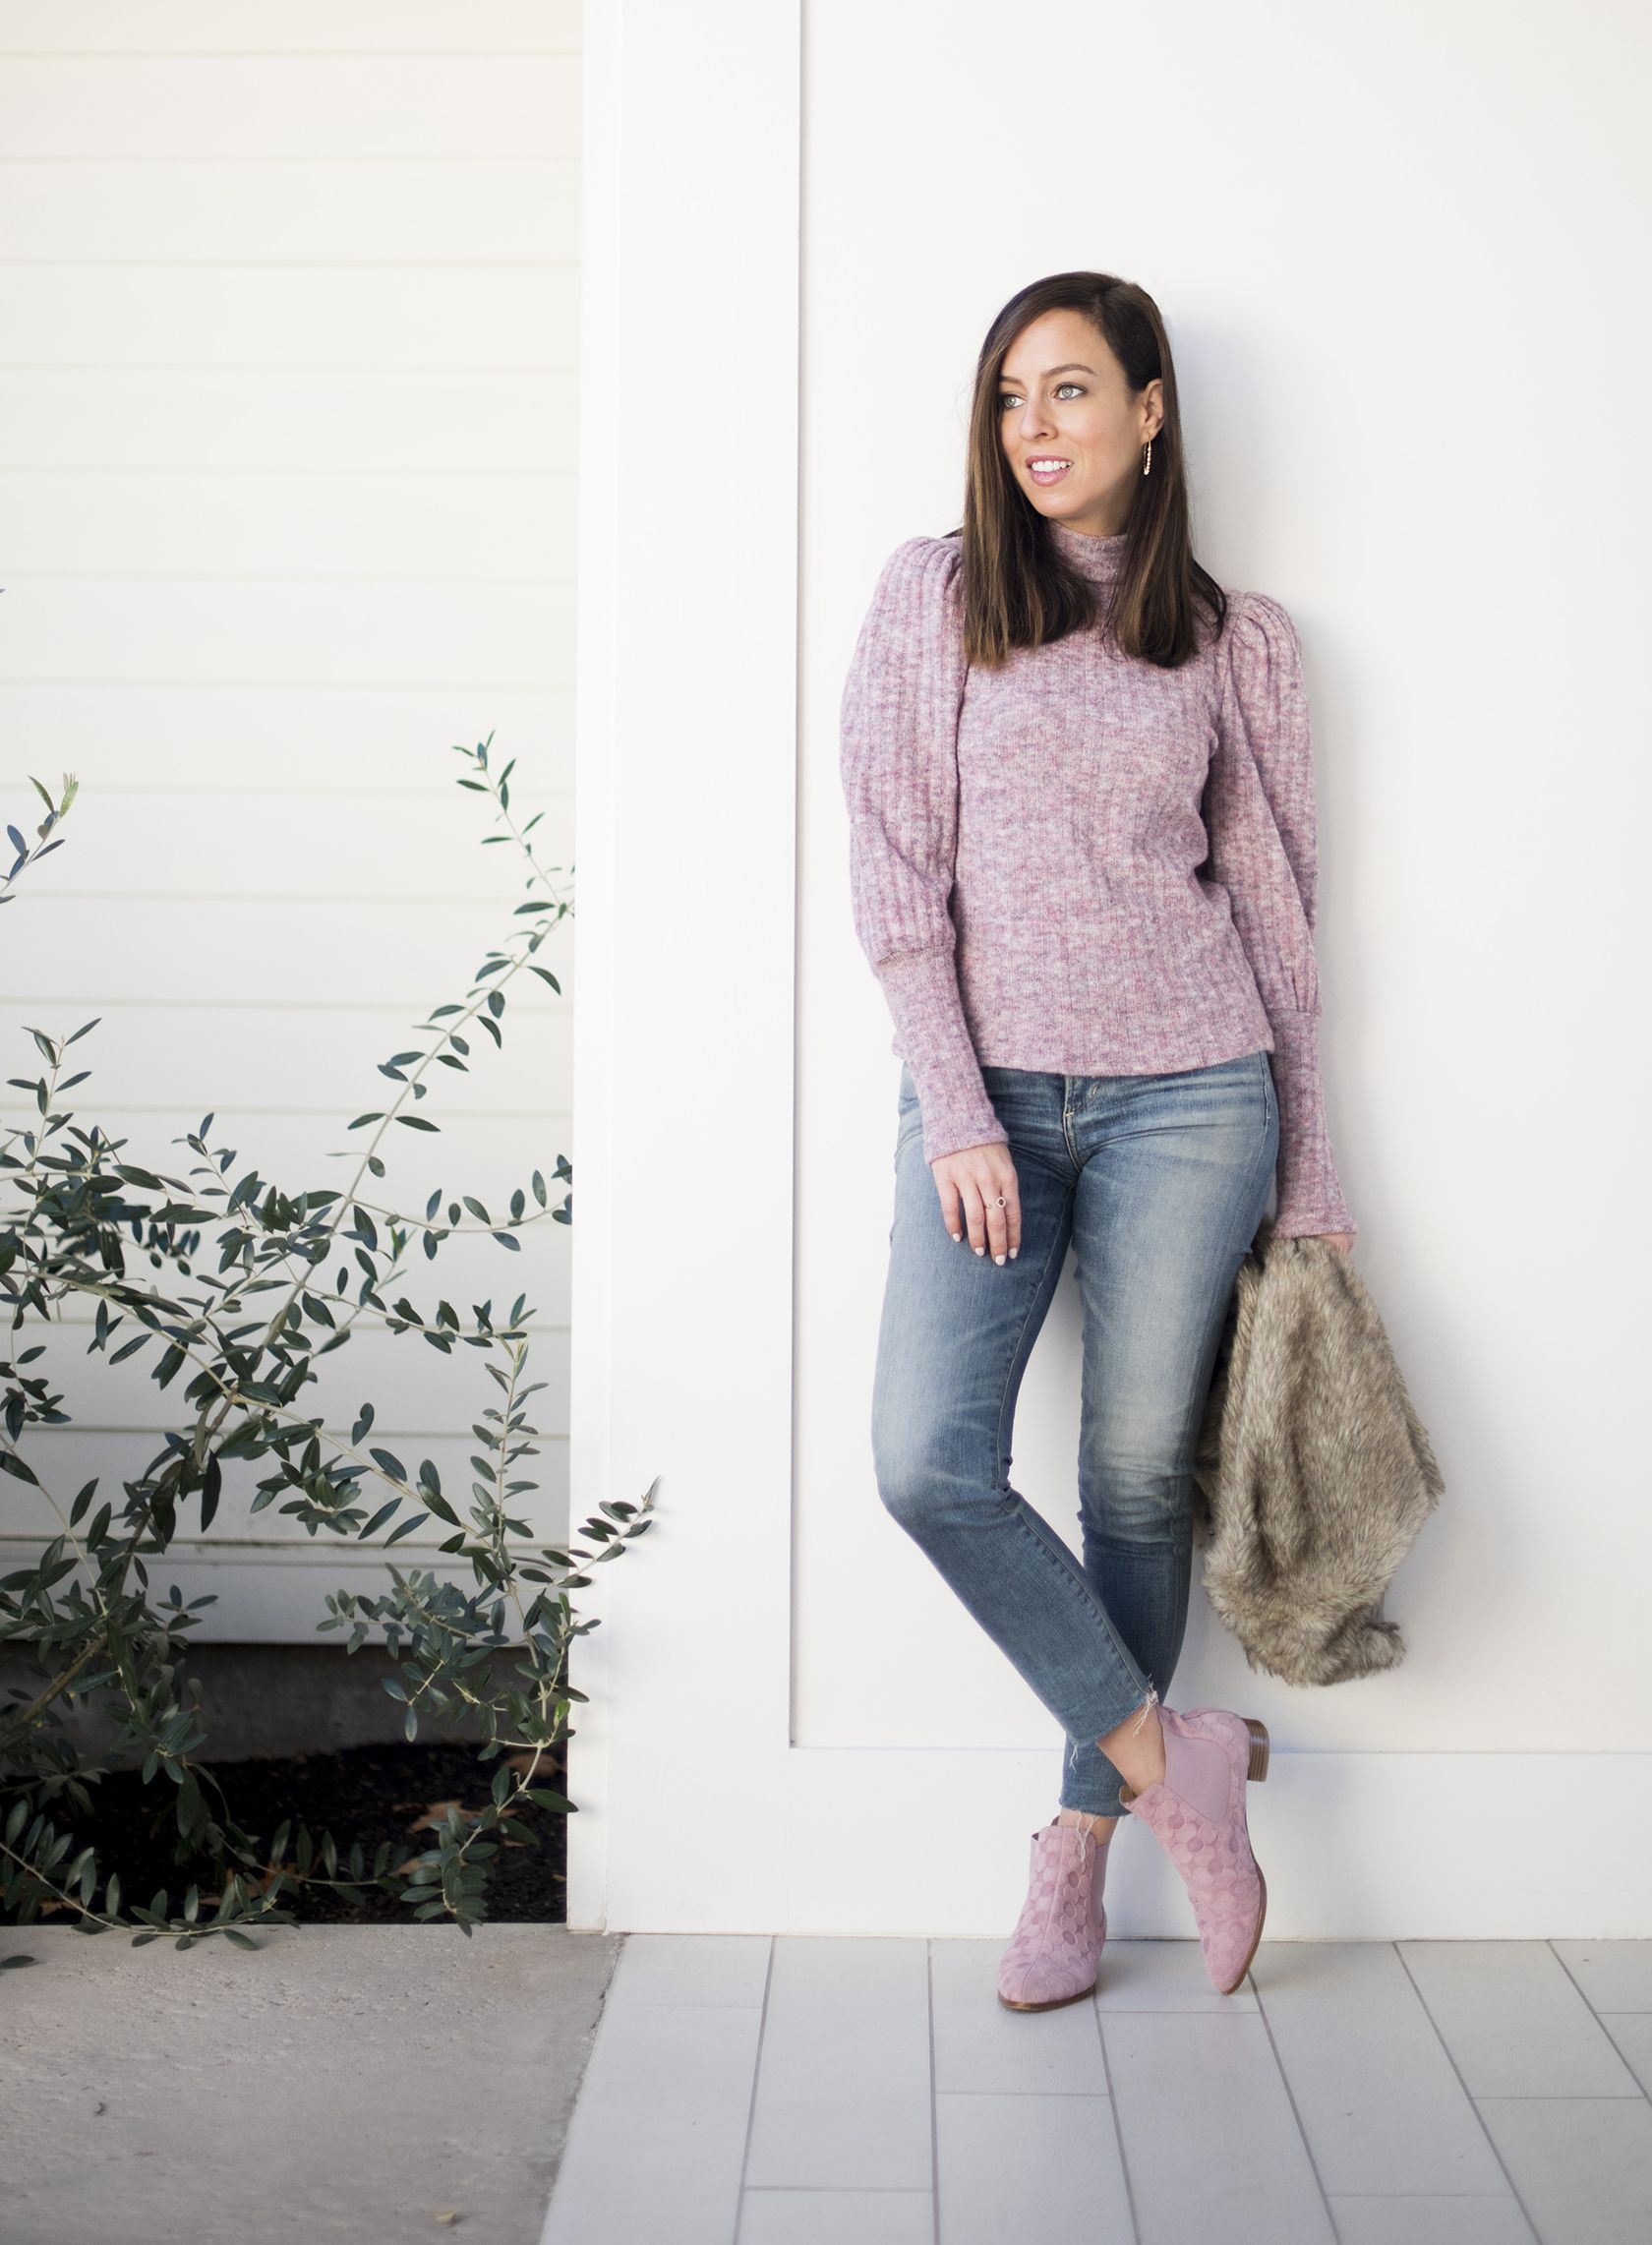 2f734e475bb Sydne Style shows casual outfit ideas in skinny jeans and pink booties   sweater  jeans  casualstyle  falloutfits  casualoutfits  outfitideas   booties  pink